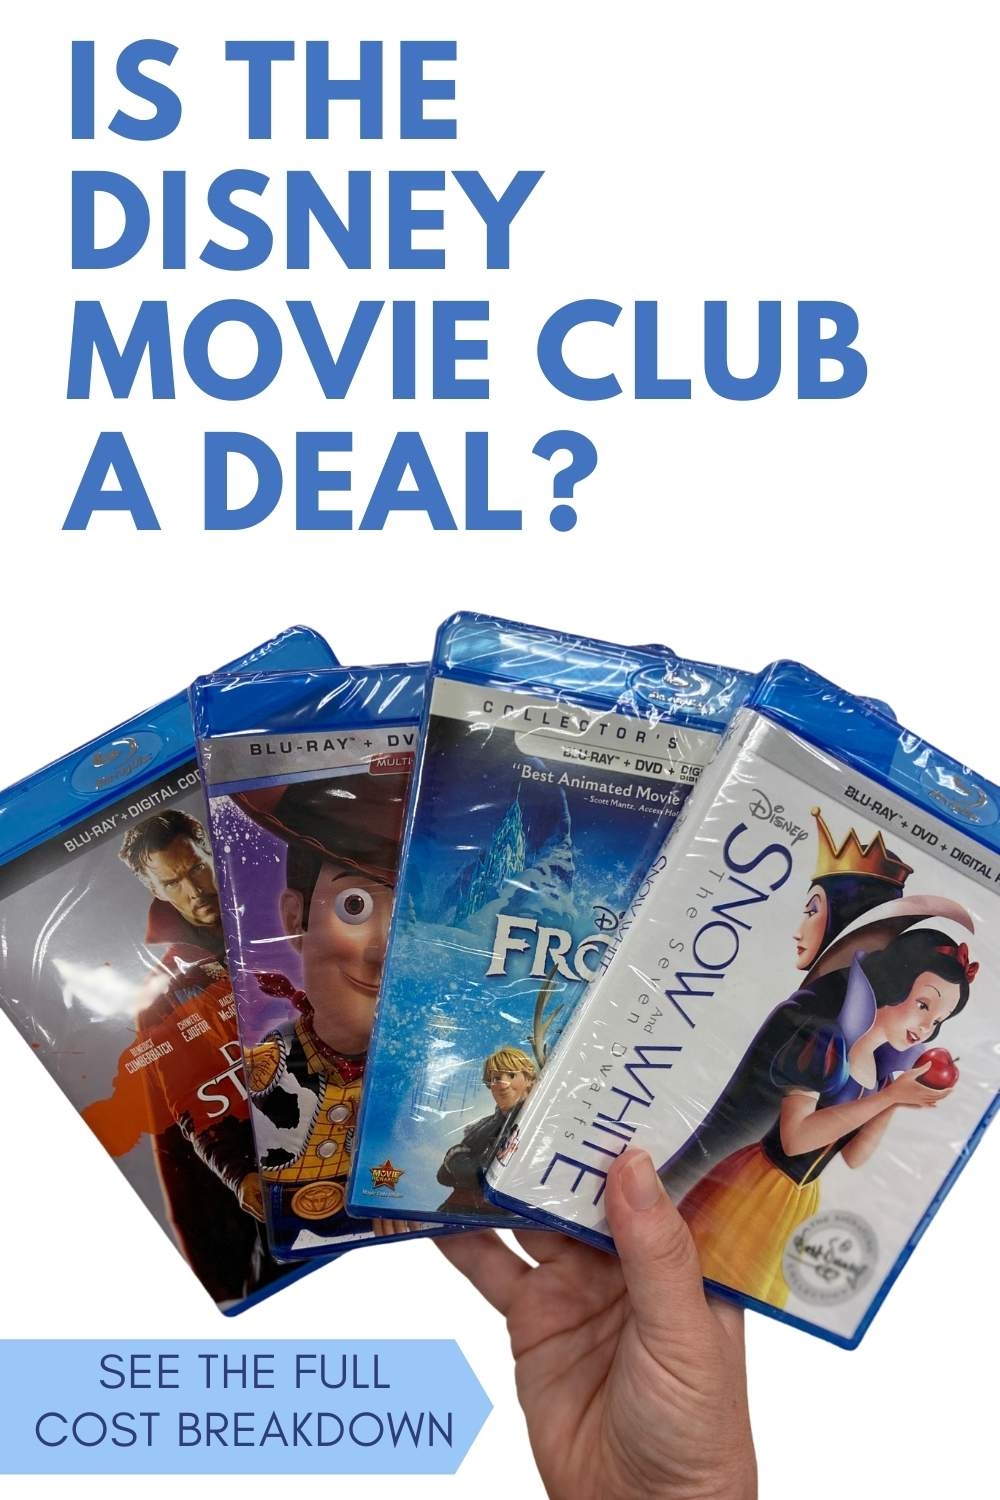 If you love Disney movies you might have pondered joining the Disney Movie Club.  Is it a deal?   Here's the full cost breakdown and all the details!